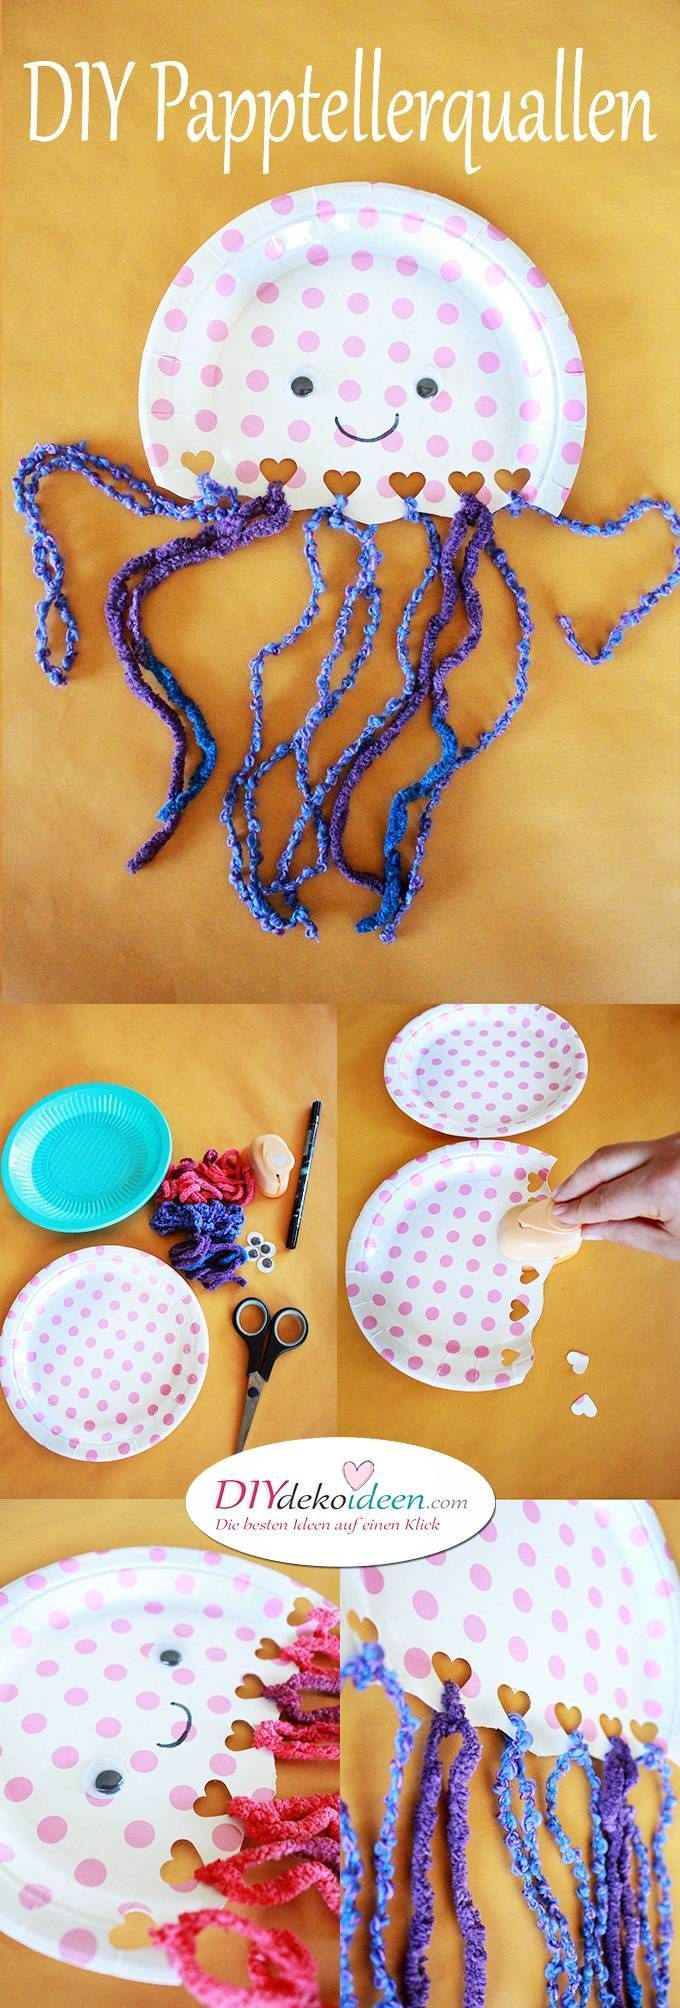 Jellyfish from paper plates – DIY crafting ideas for crafting with small children